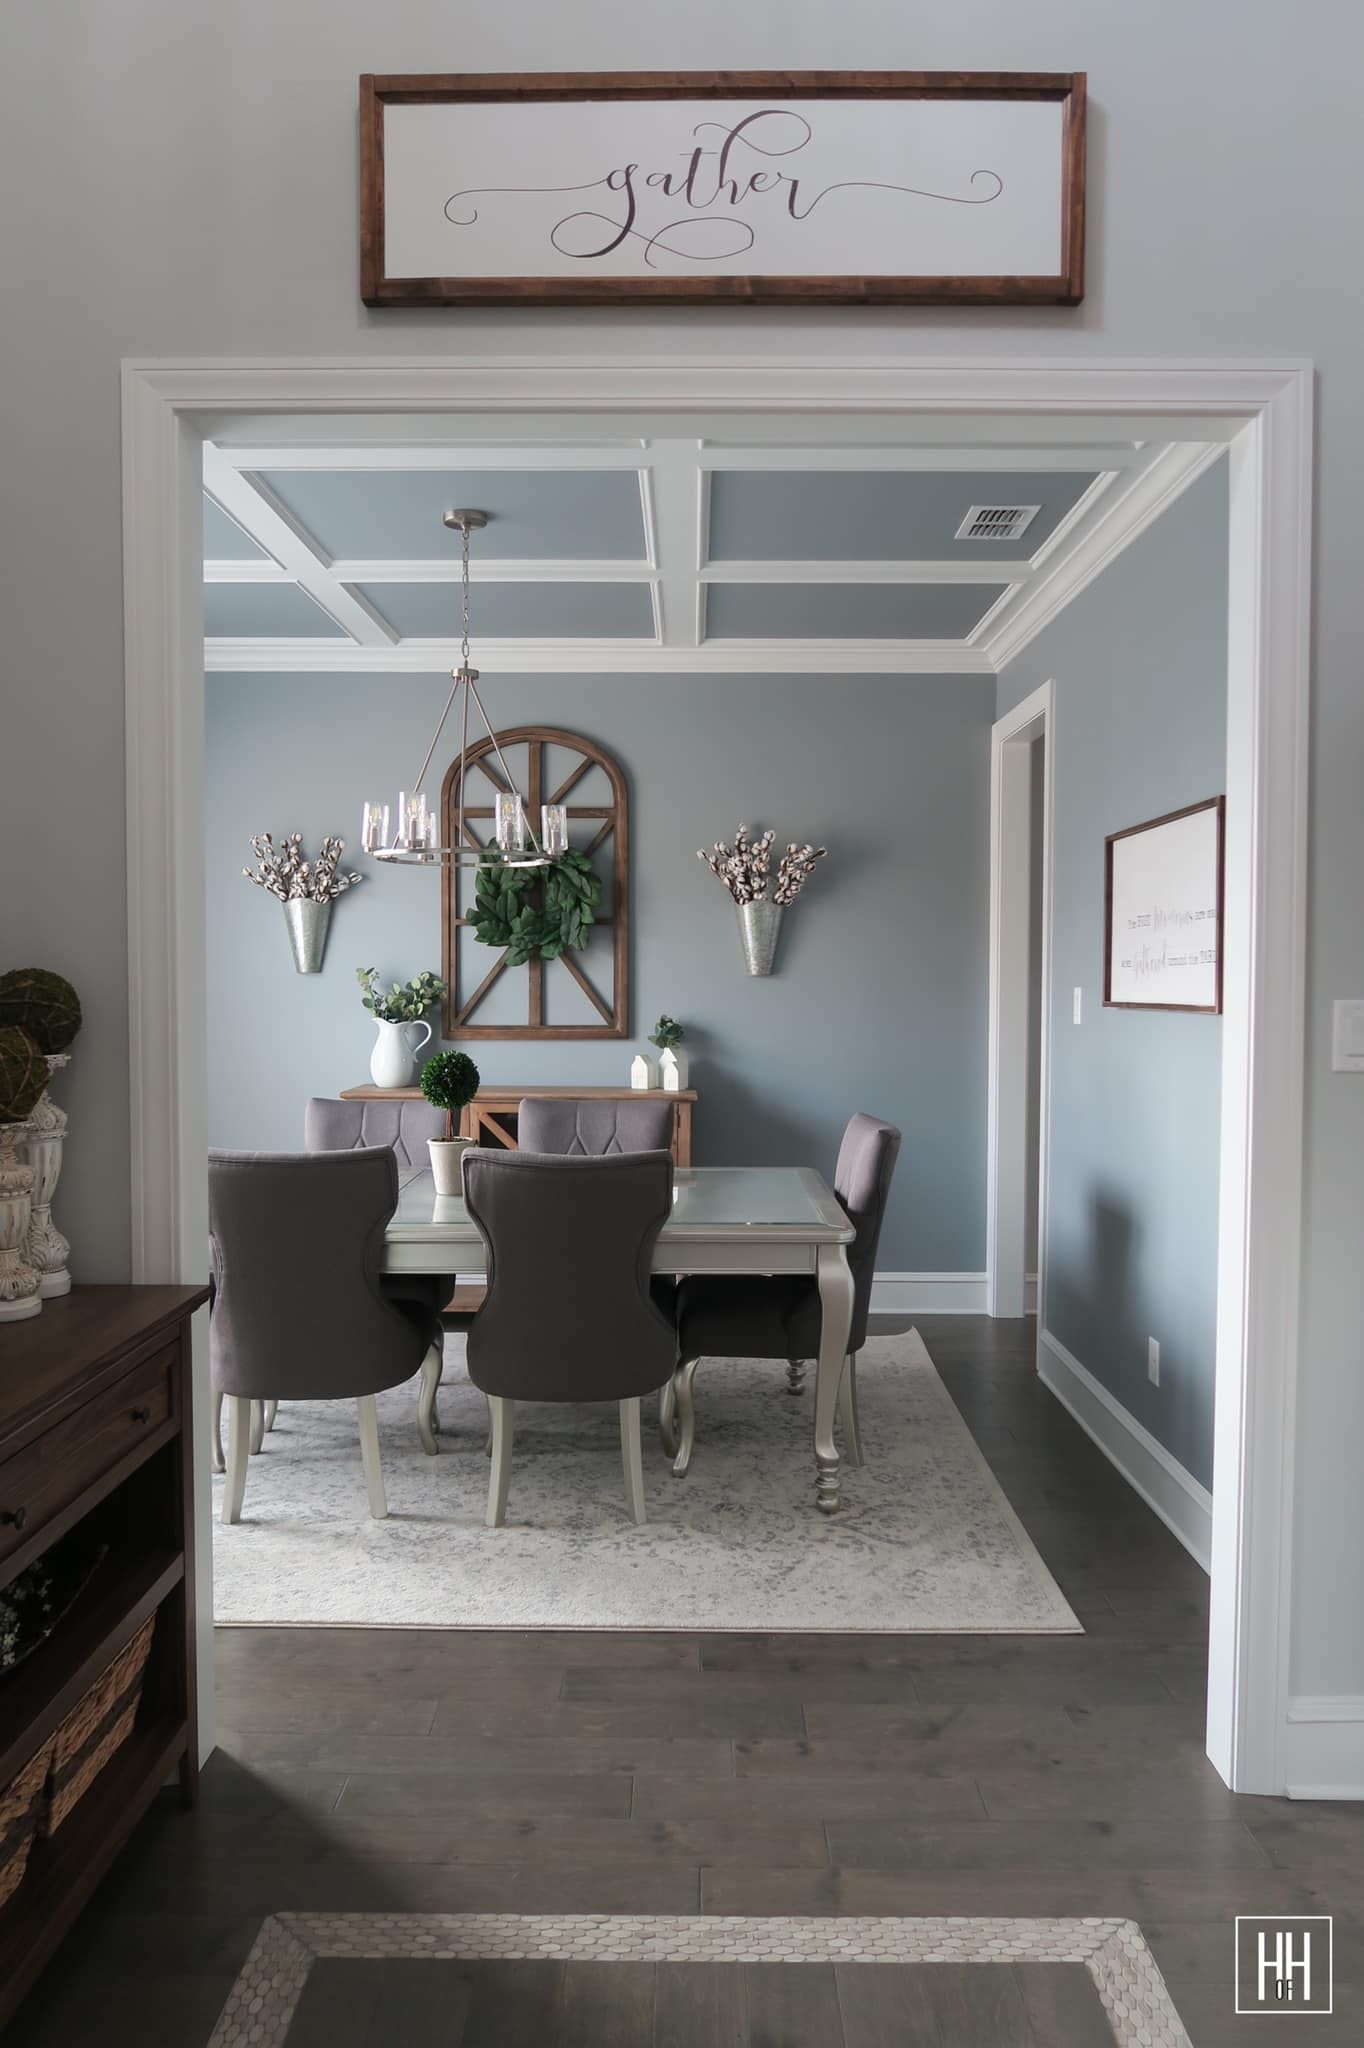 Transitional Style Meets Modern Farmhouse Dining Room Farmhouse Style Dining Room Modern Farmhouse Dining Modern Farmhouse Dining Room #transitional #farmhouse #living #room